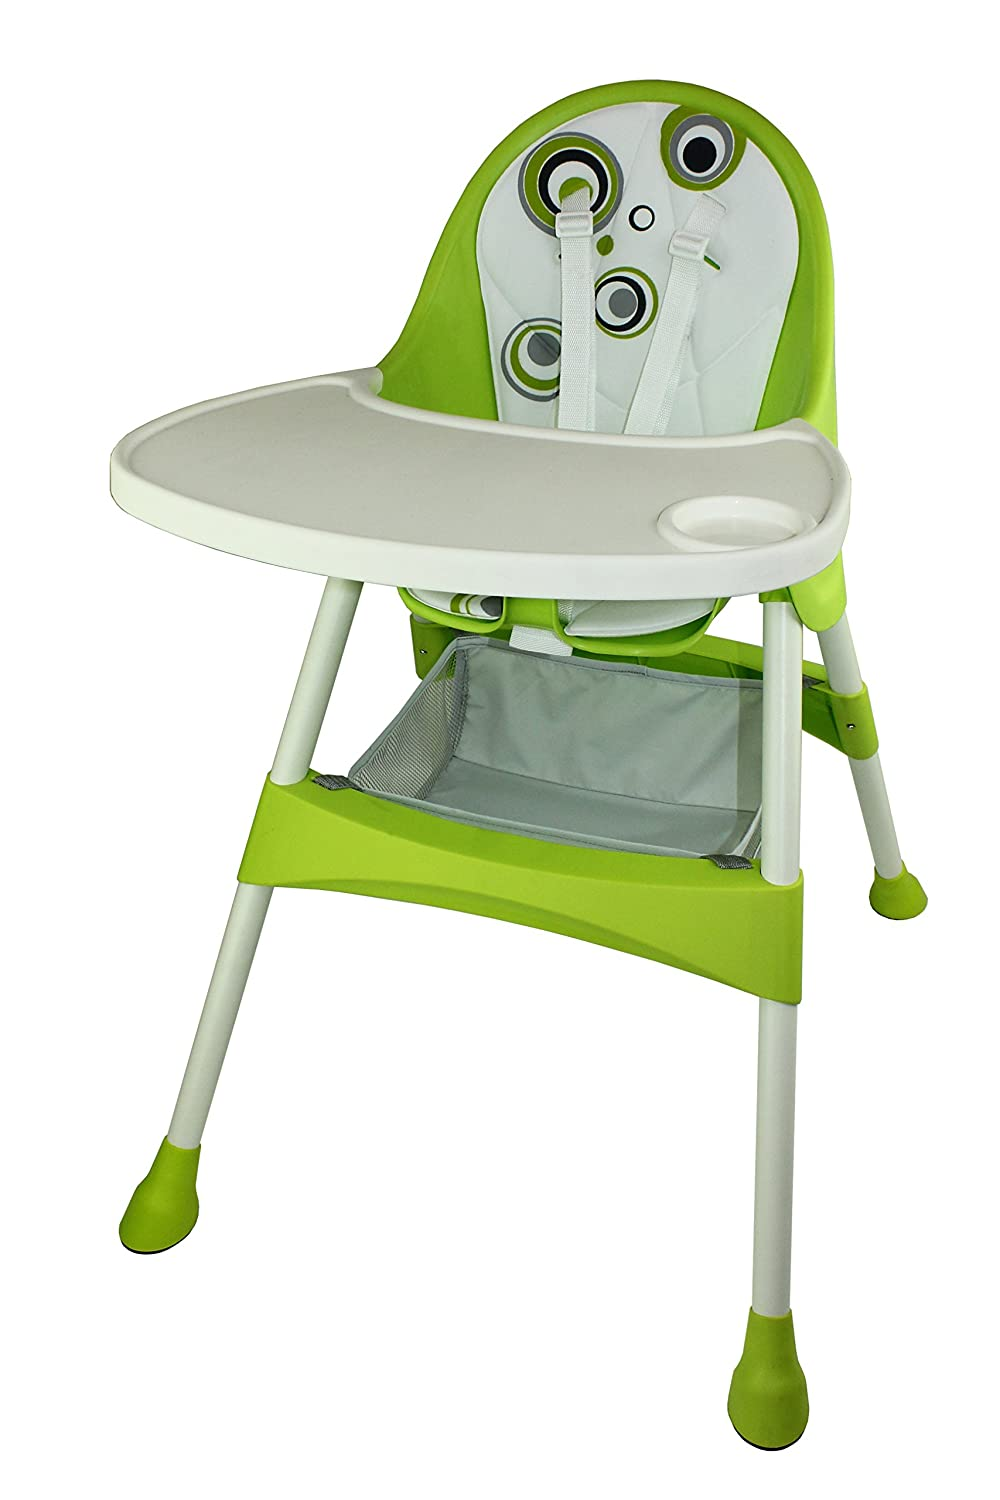 Baby Diego 2-in-1 High Chair, Green HCG2015